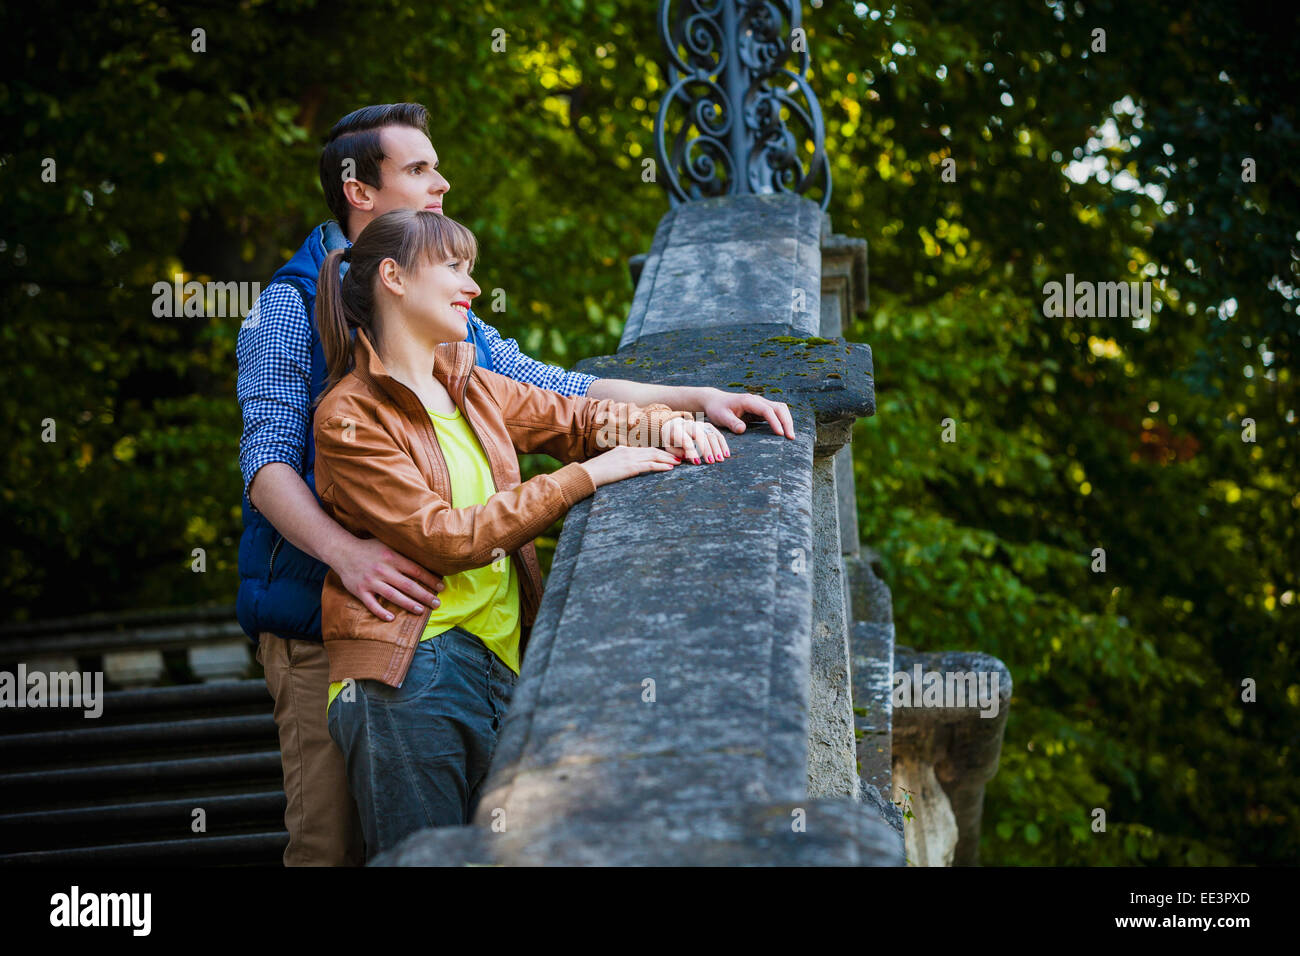 Young couple standing on staircase outdoors, Munich, Bavaria, Germany Stock Photo